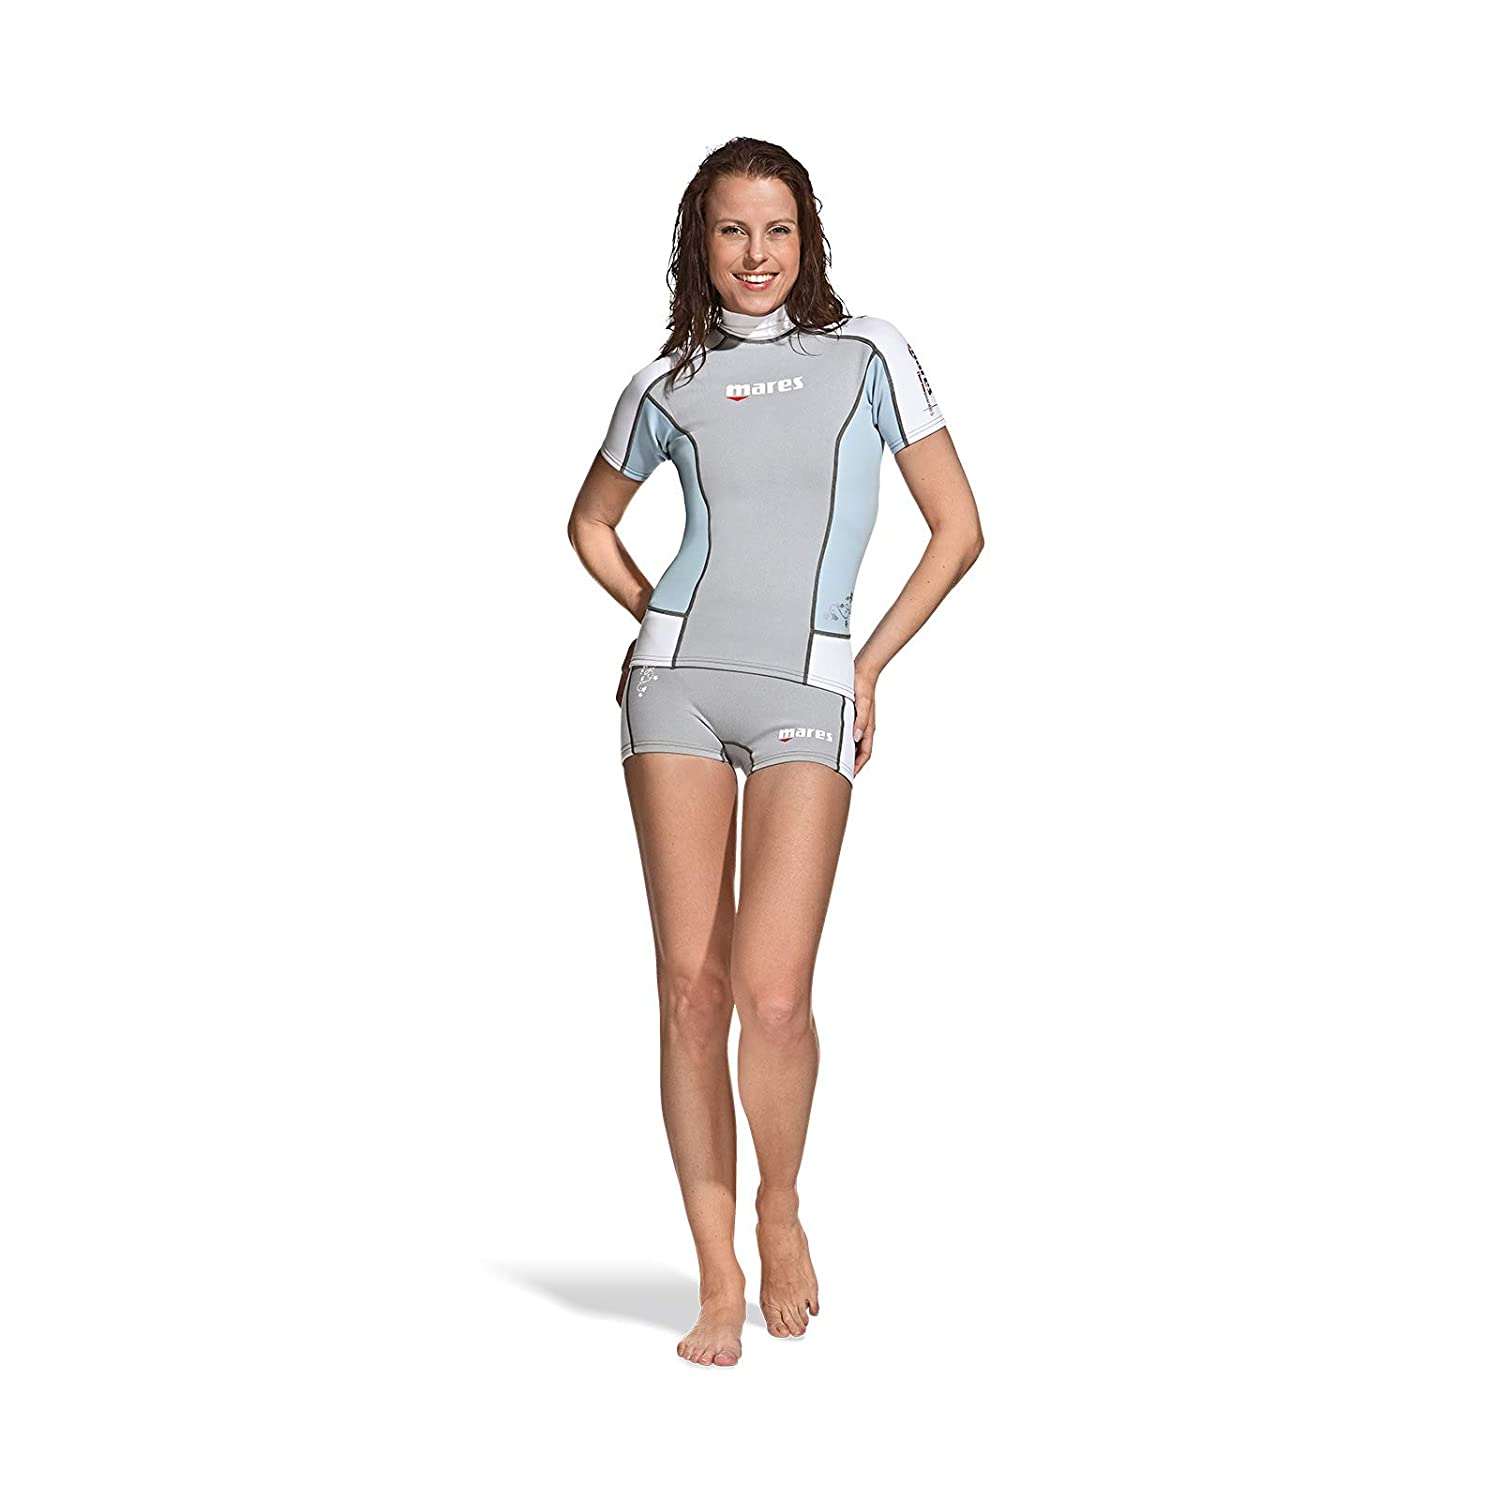 Color Gris Traje de Buceo para Mujer Mares Thermo Guard L-Sleeve 0.5 She Dives